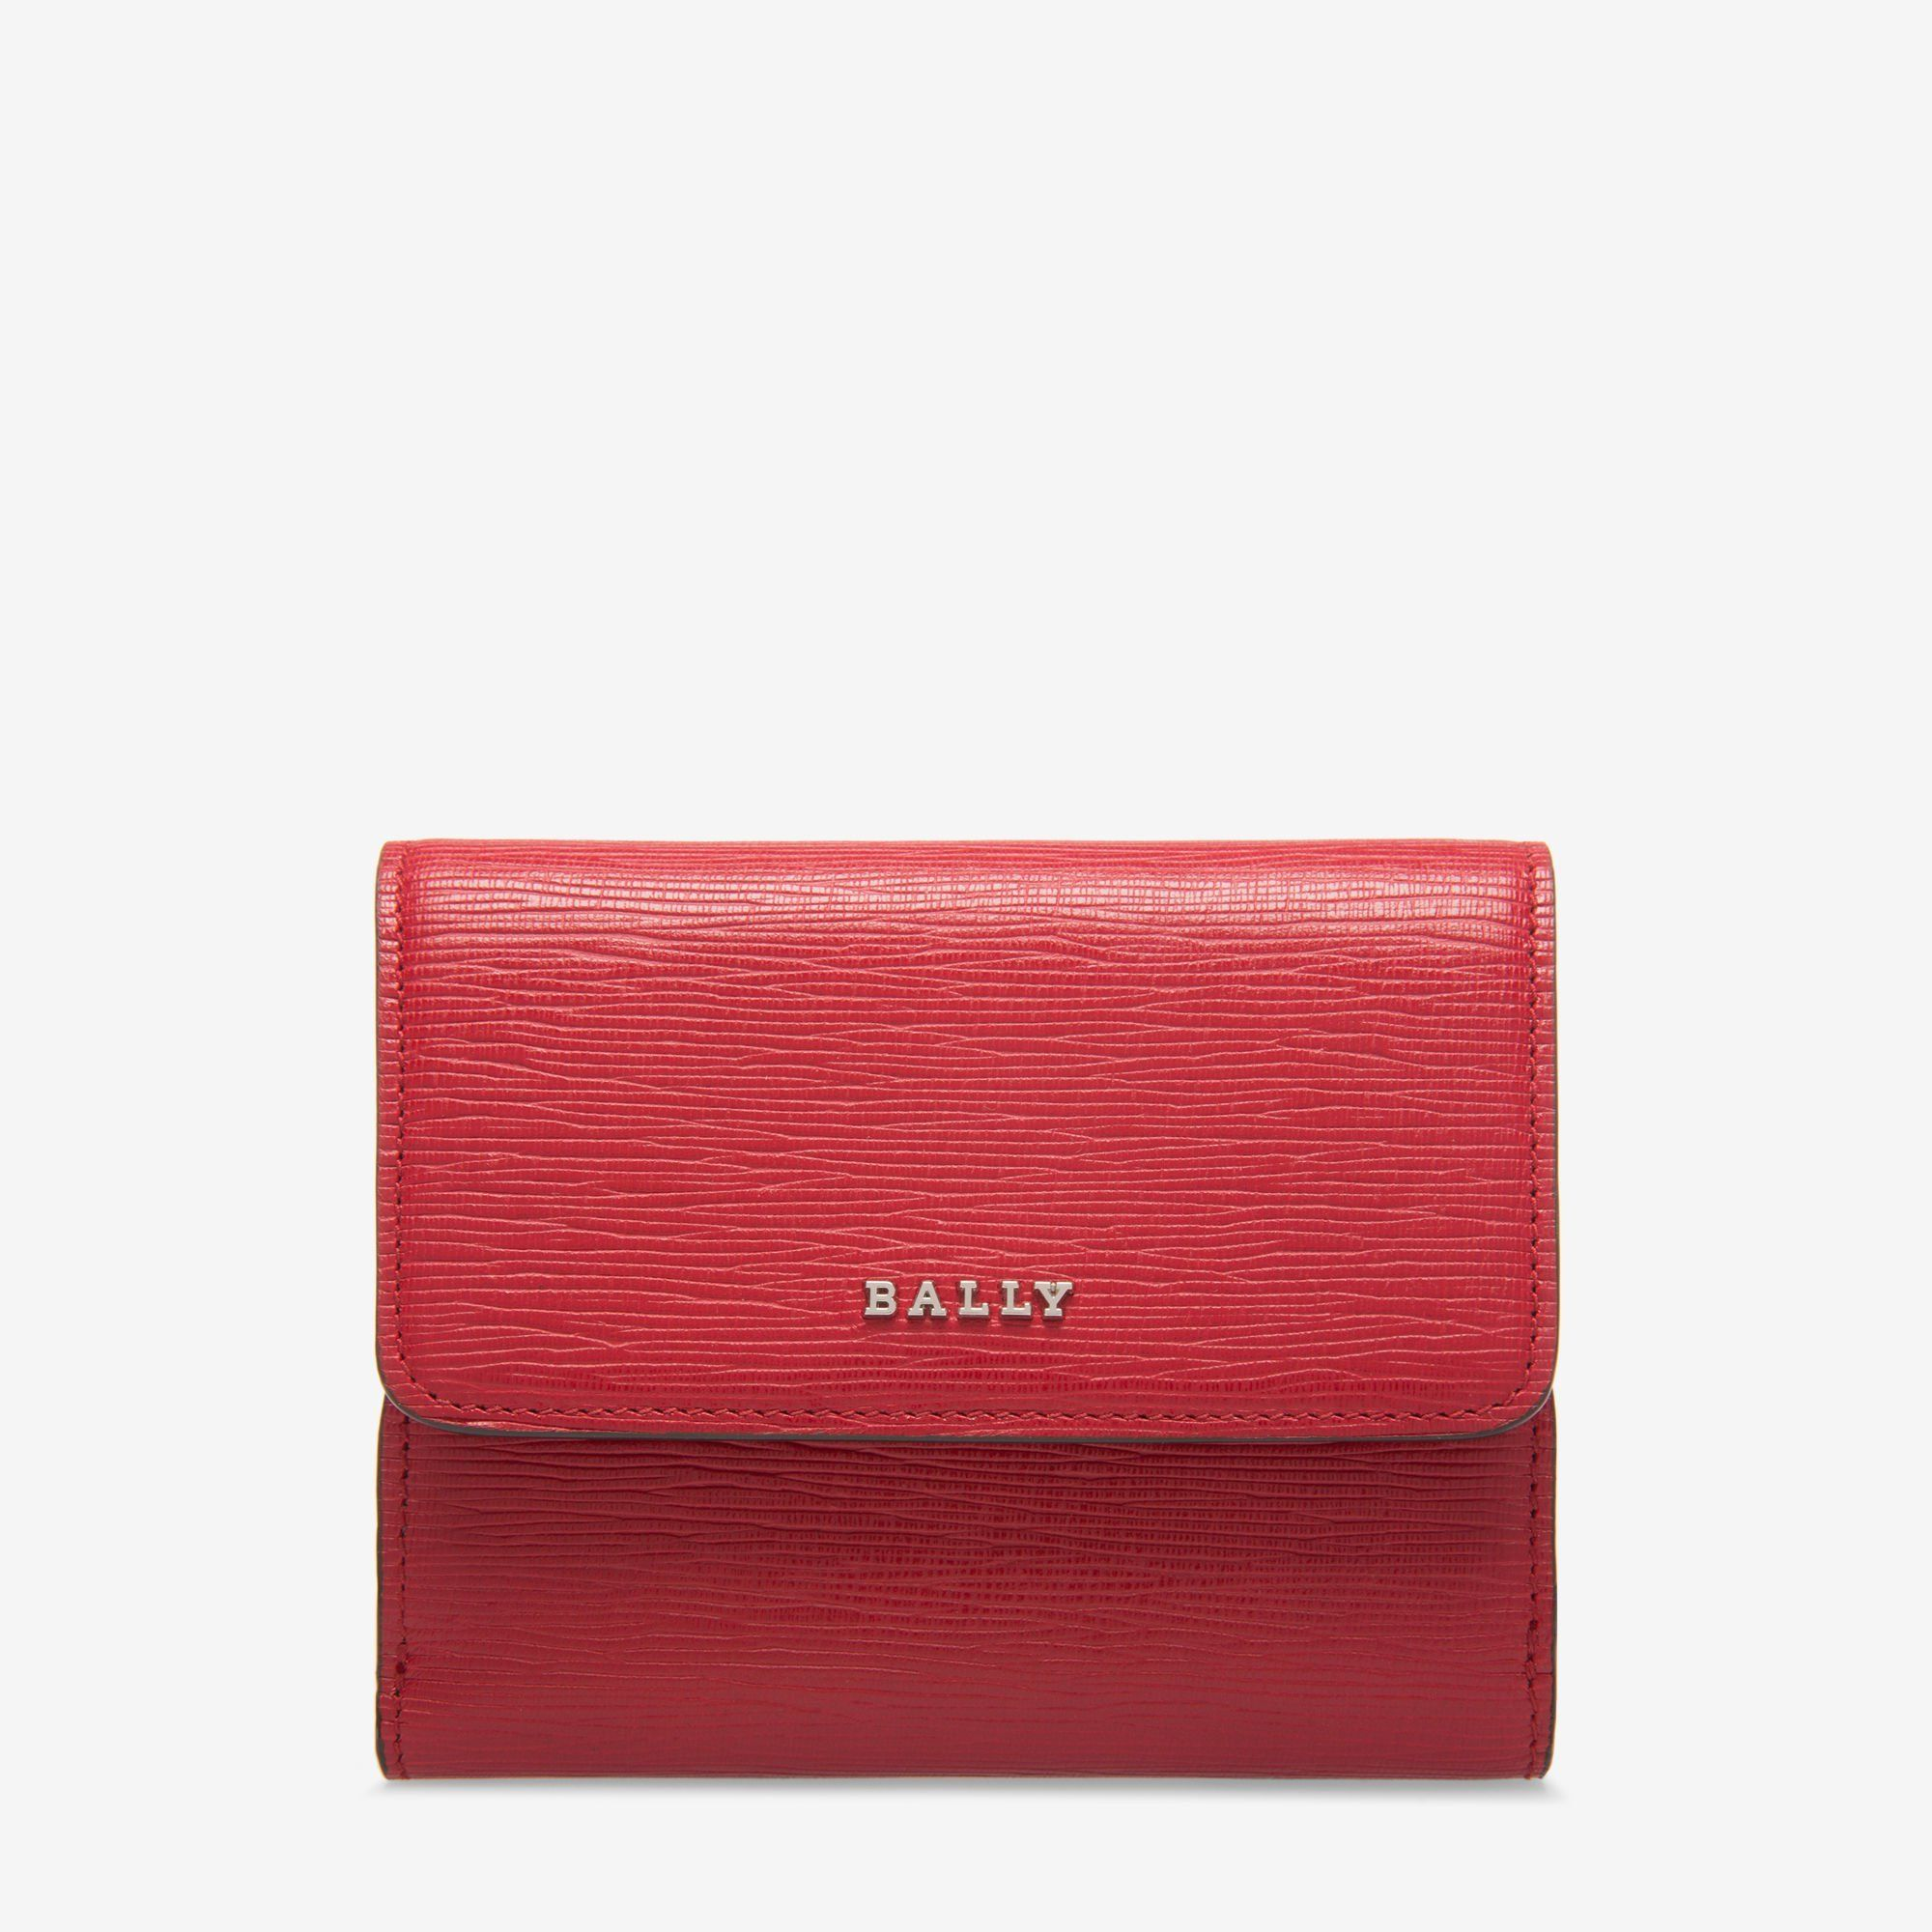 Black Friday Deals Bally Sale Items Plus November 2018 Promos Deals New Arrivals Bally Sponsored Sale Items Holiday Gift Shopping Black Friday Deals